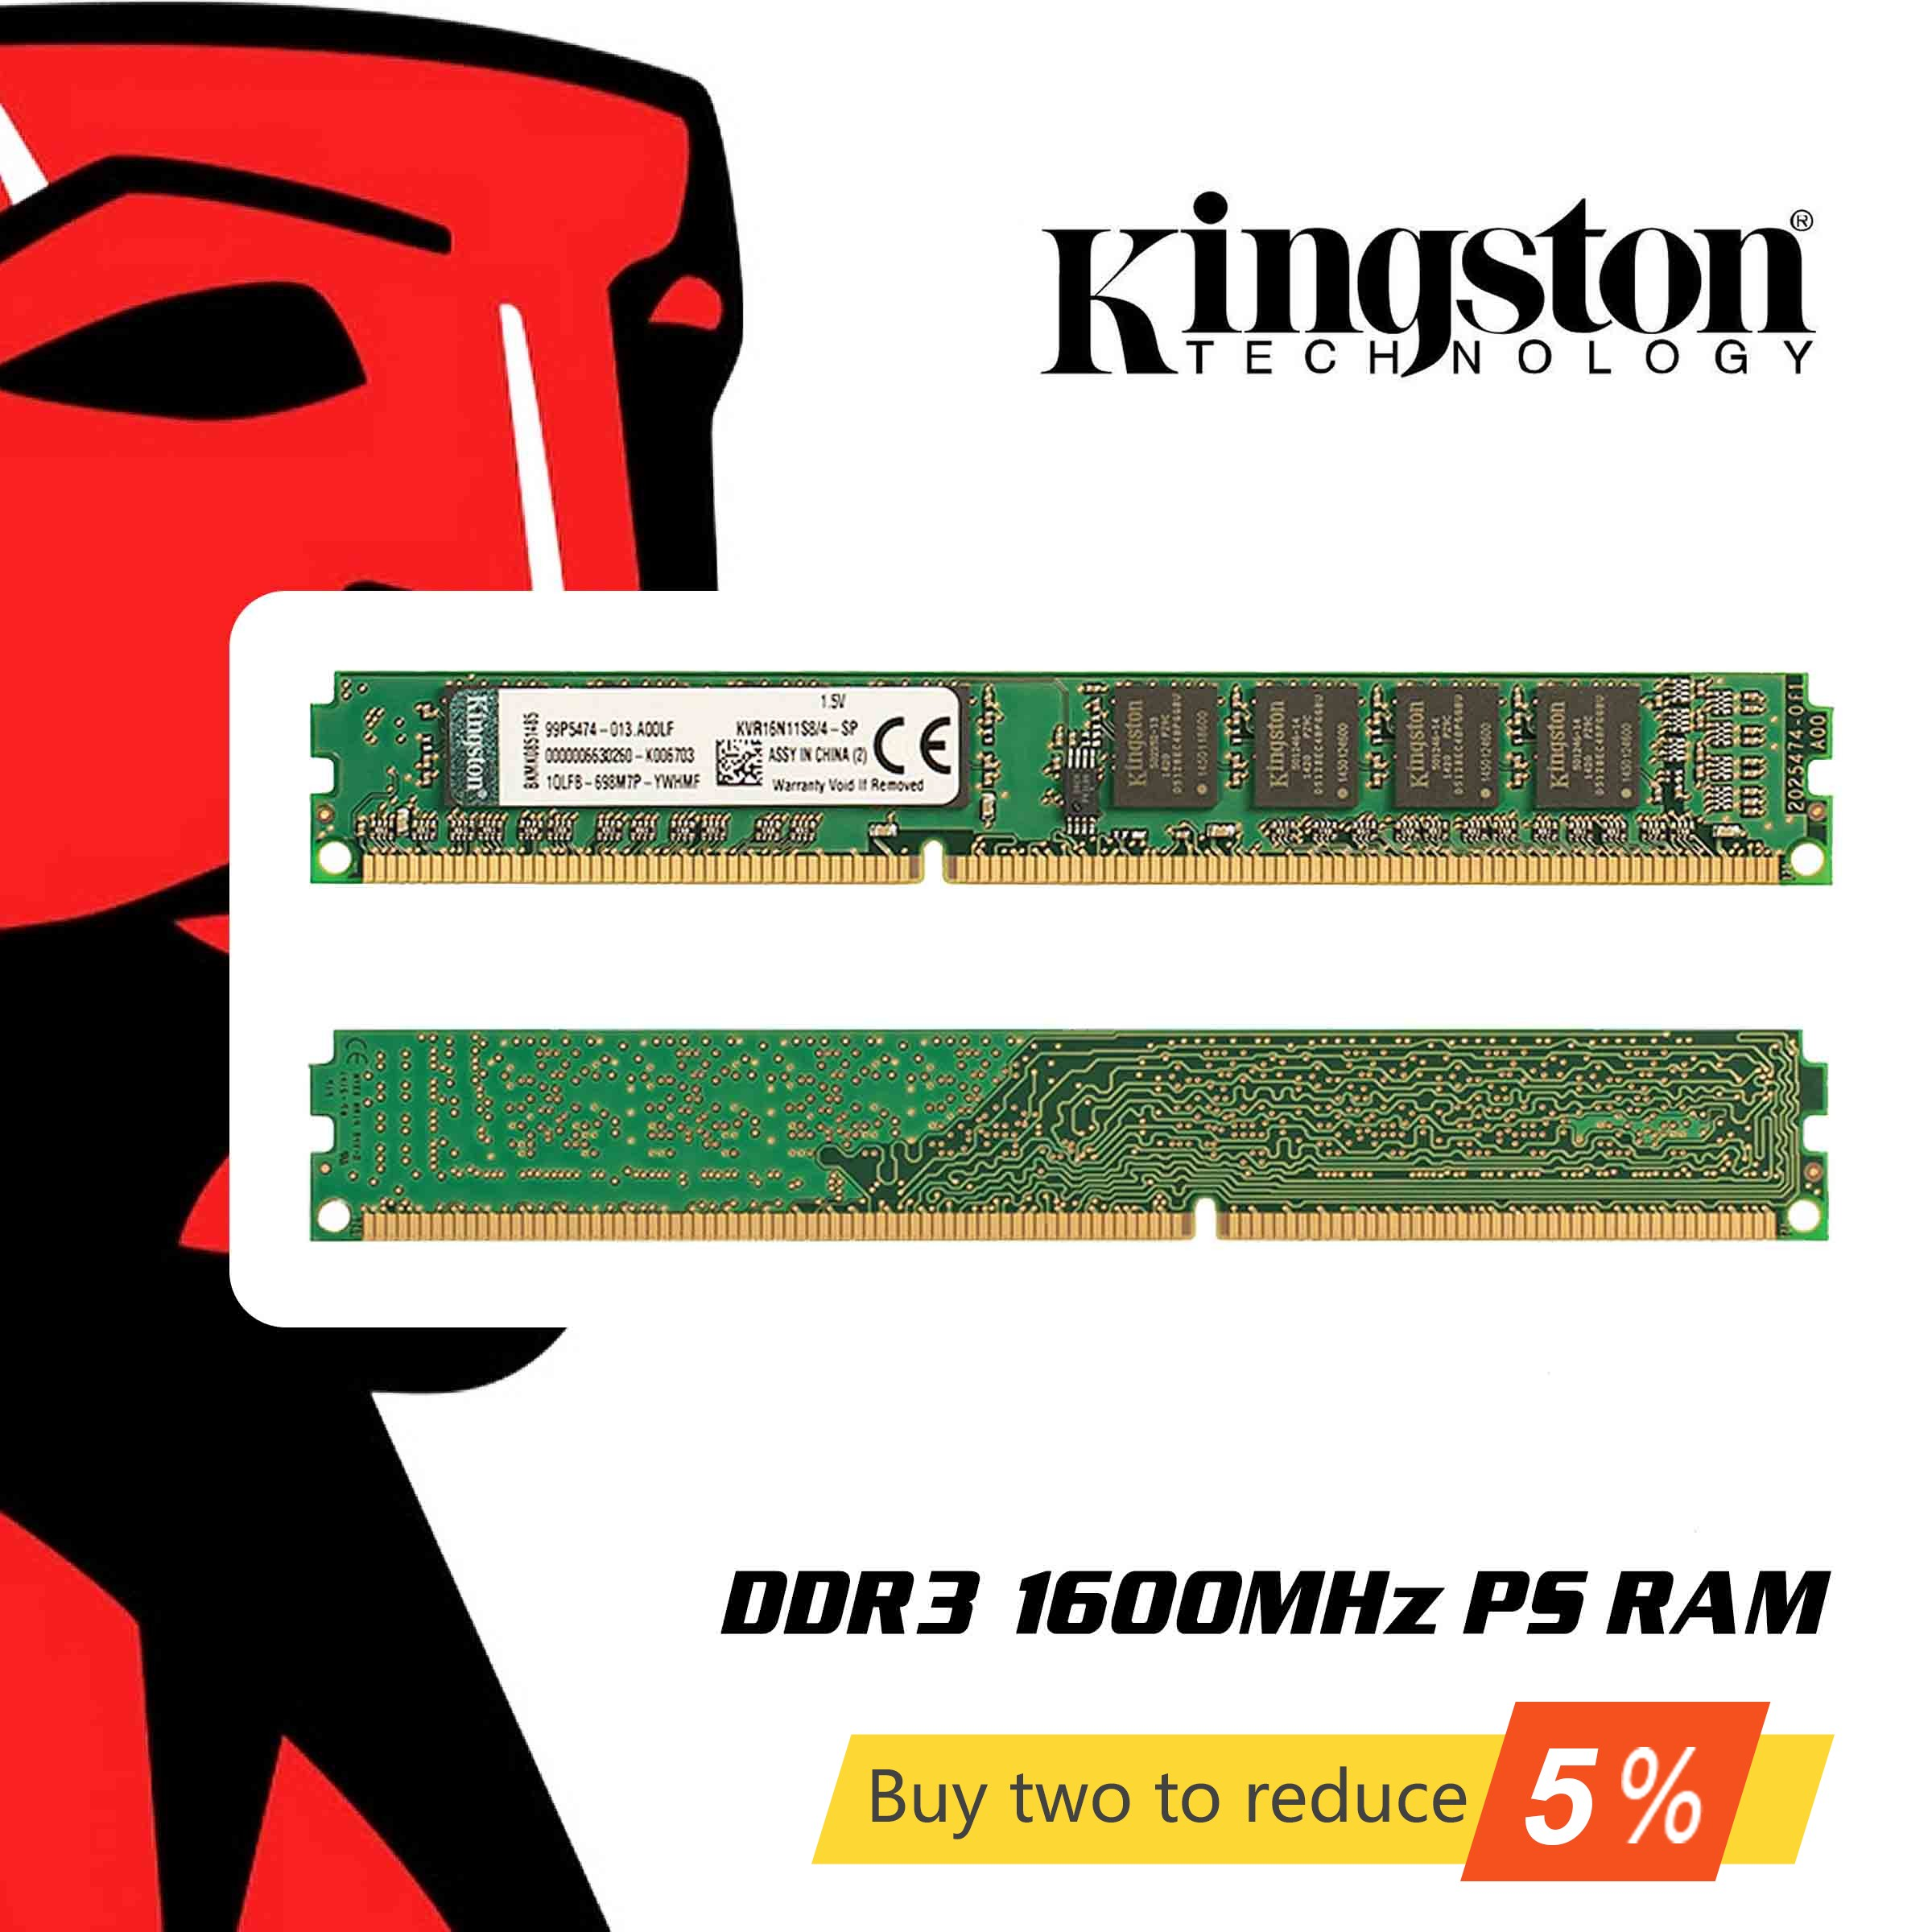 Original Kingston <font><b>RAM</b></font> Memory <font><b>DDR3</b></font> 1600MHZ 4GB 8GB <font><b>Memoria</b></font> <font><b>RAMs</b></font> <font><b>1600</b></font> <font><b>MHz</b></font> 8 Gigabytes Gigs Stick for Desktop Laptop PC Notebook image